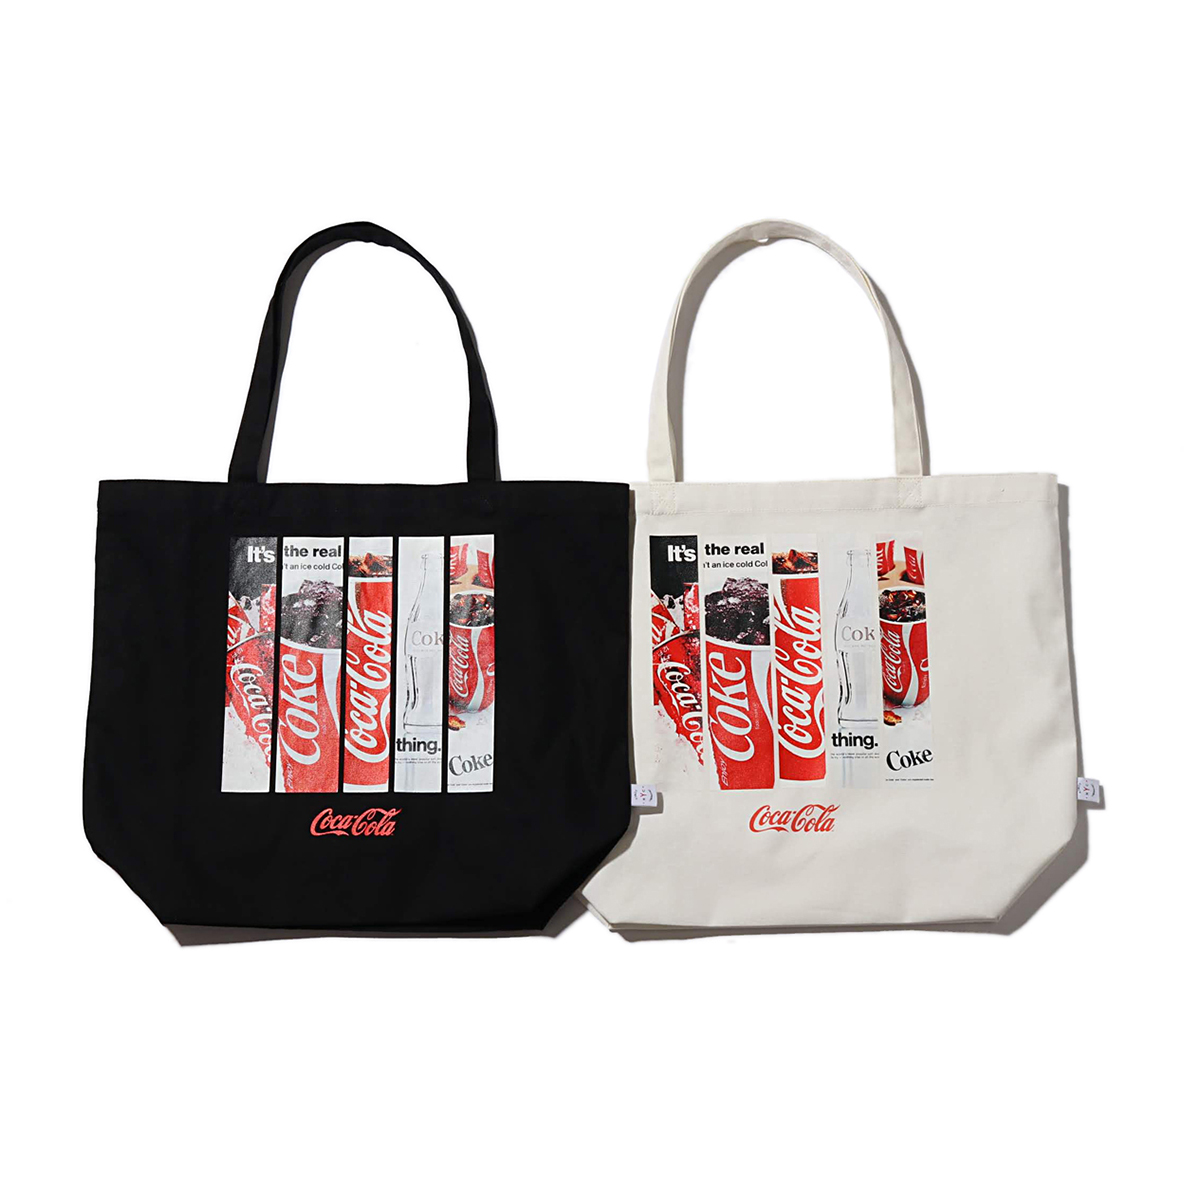 COCA-COLA by ATMOS LAB TOTE BAG